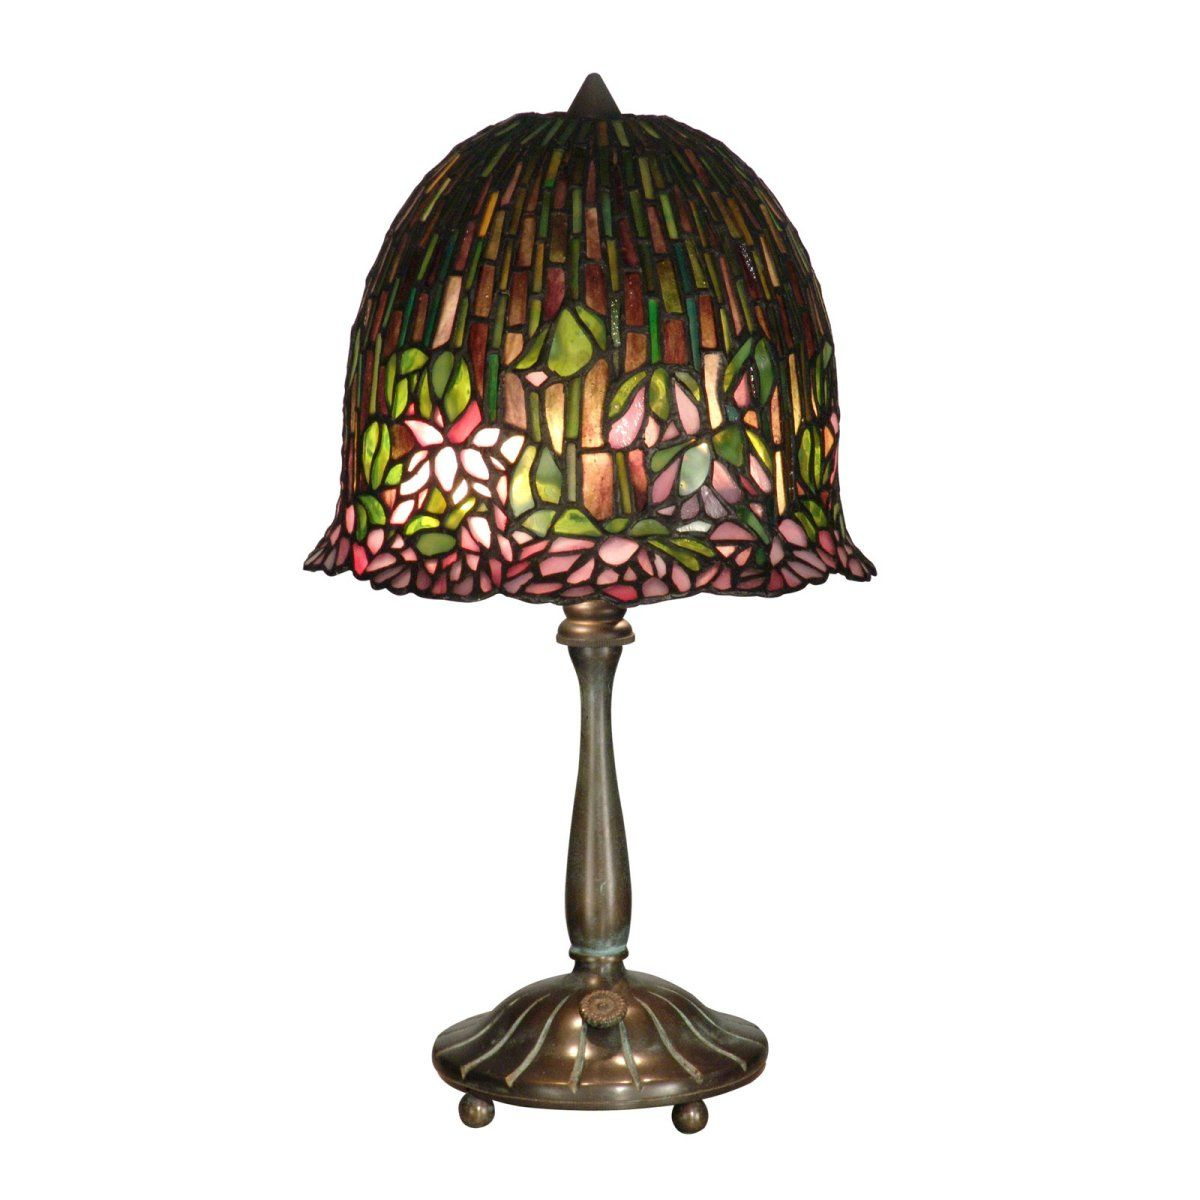 Dale tiffany lotus flower table lamp products i love pinterest dale tiffany lotus flower table lamp izmirmasajfo Choice Image